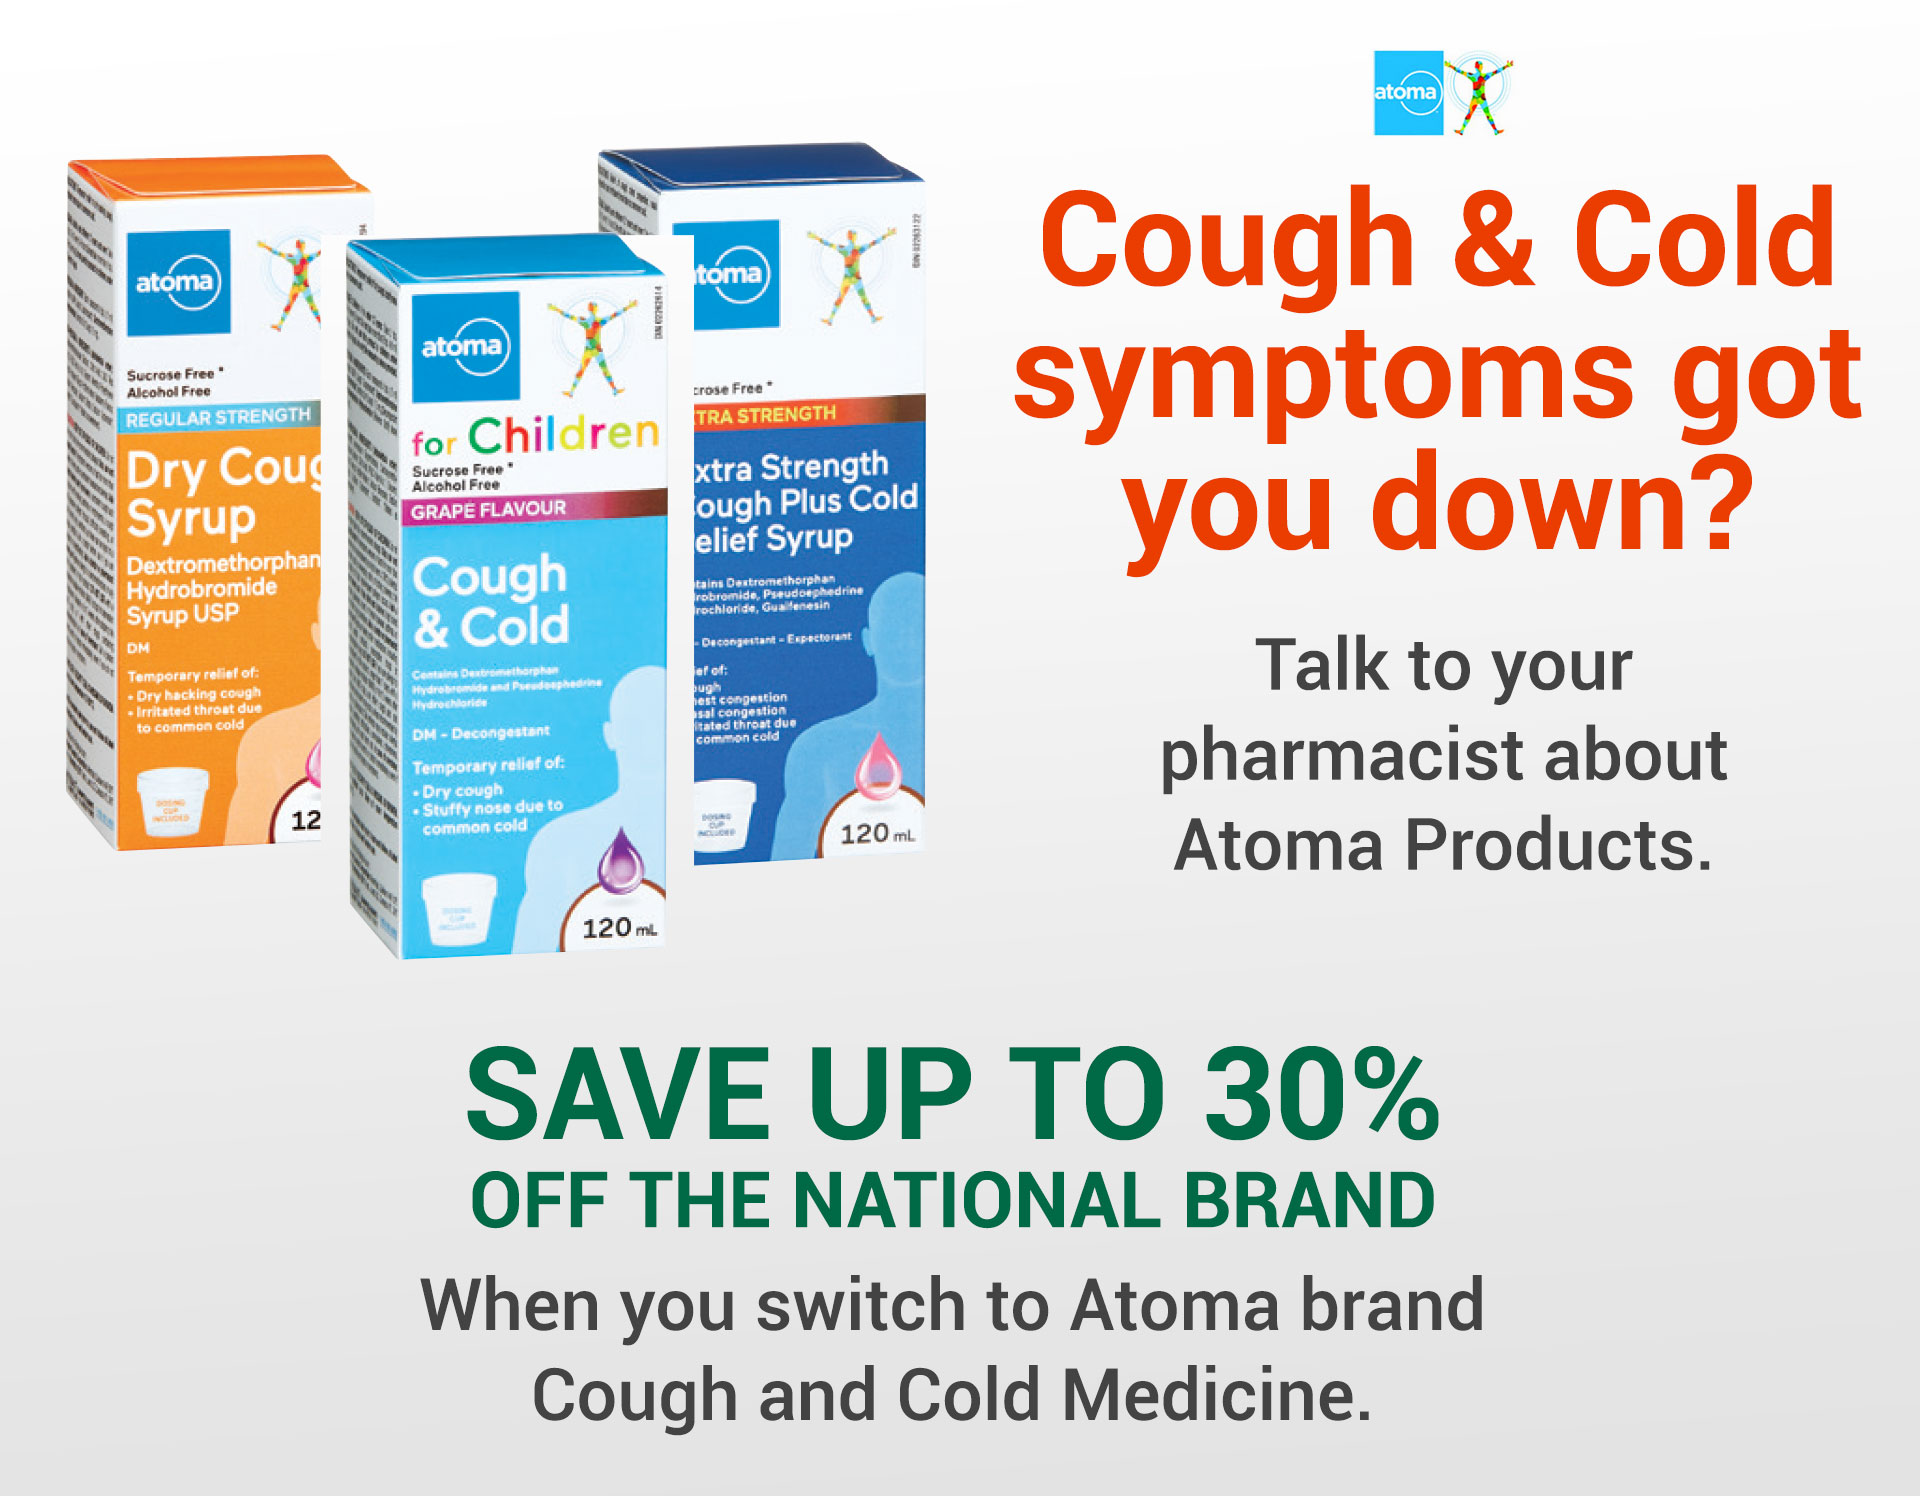 Save 30% when you switch to Atoma Cough and Cold Medication.